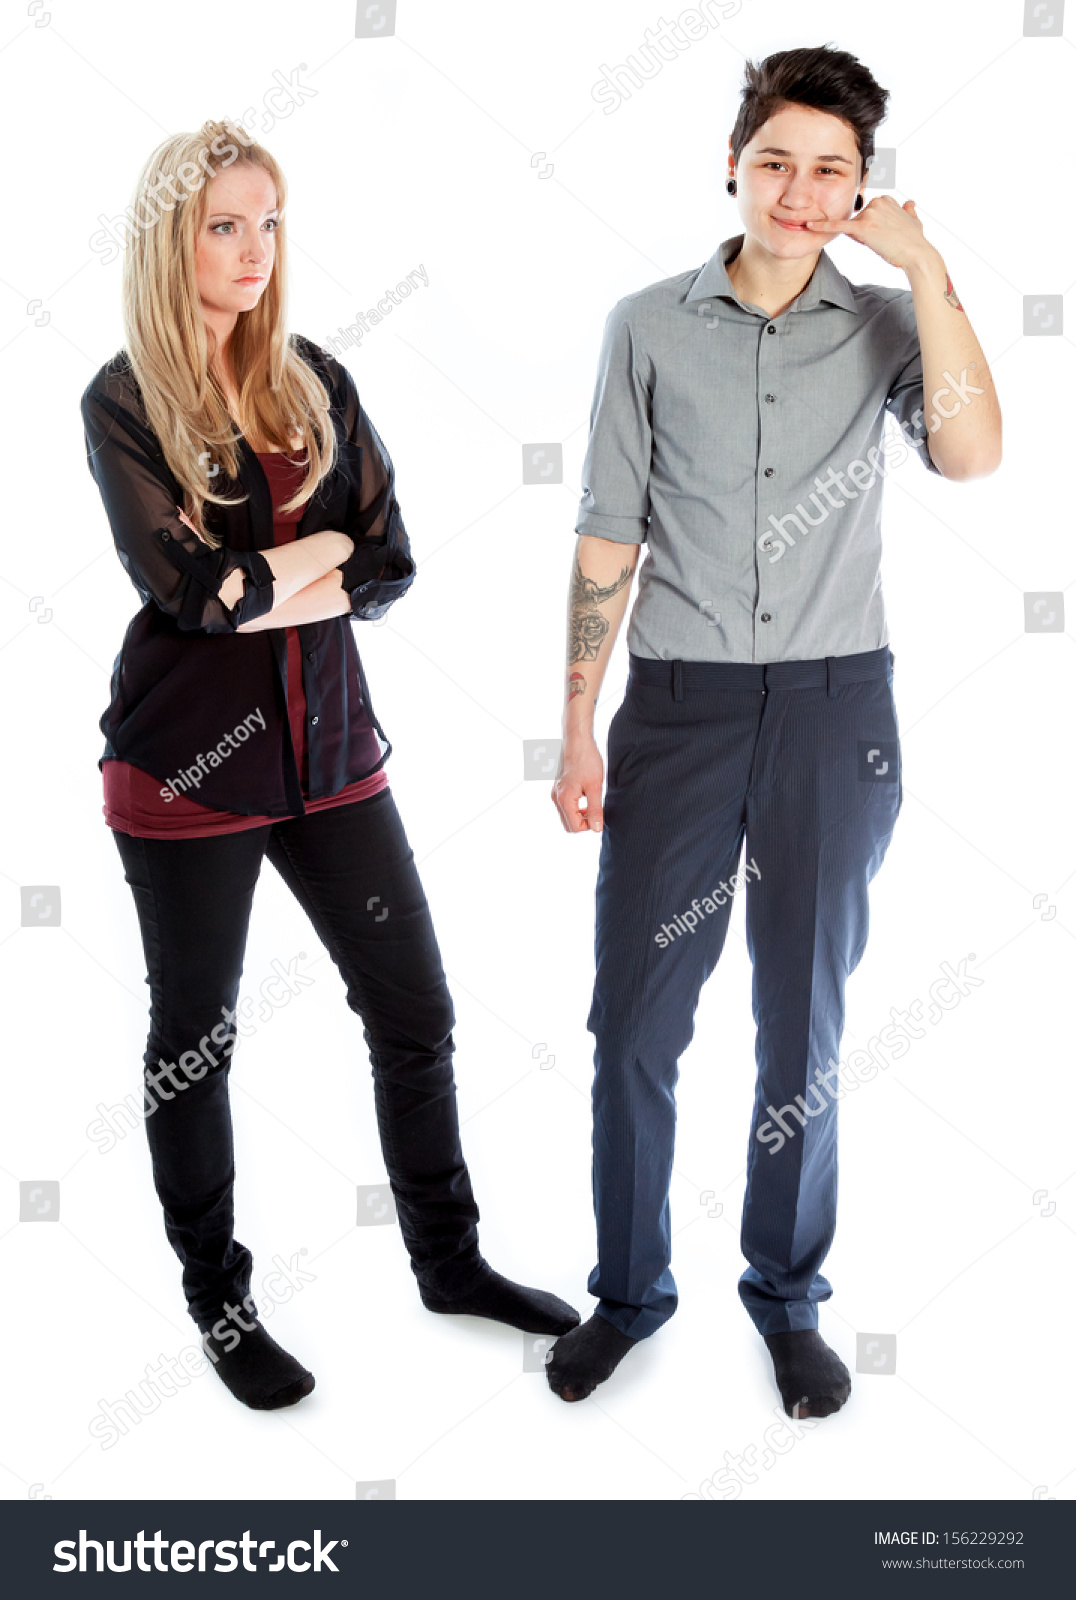 cute lesbian couple 30 years old stock photo (edit now)- shutterstock